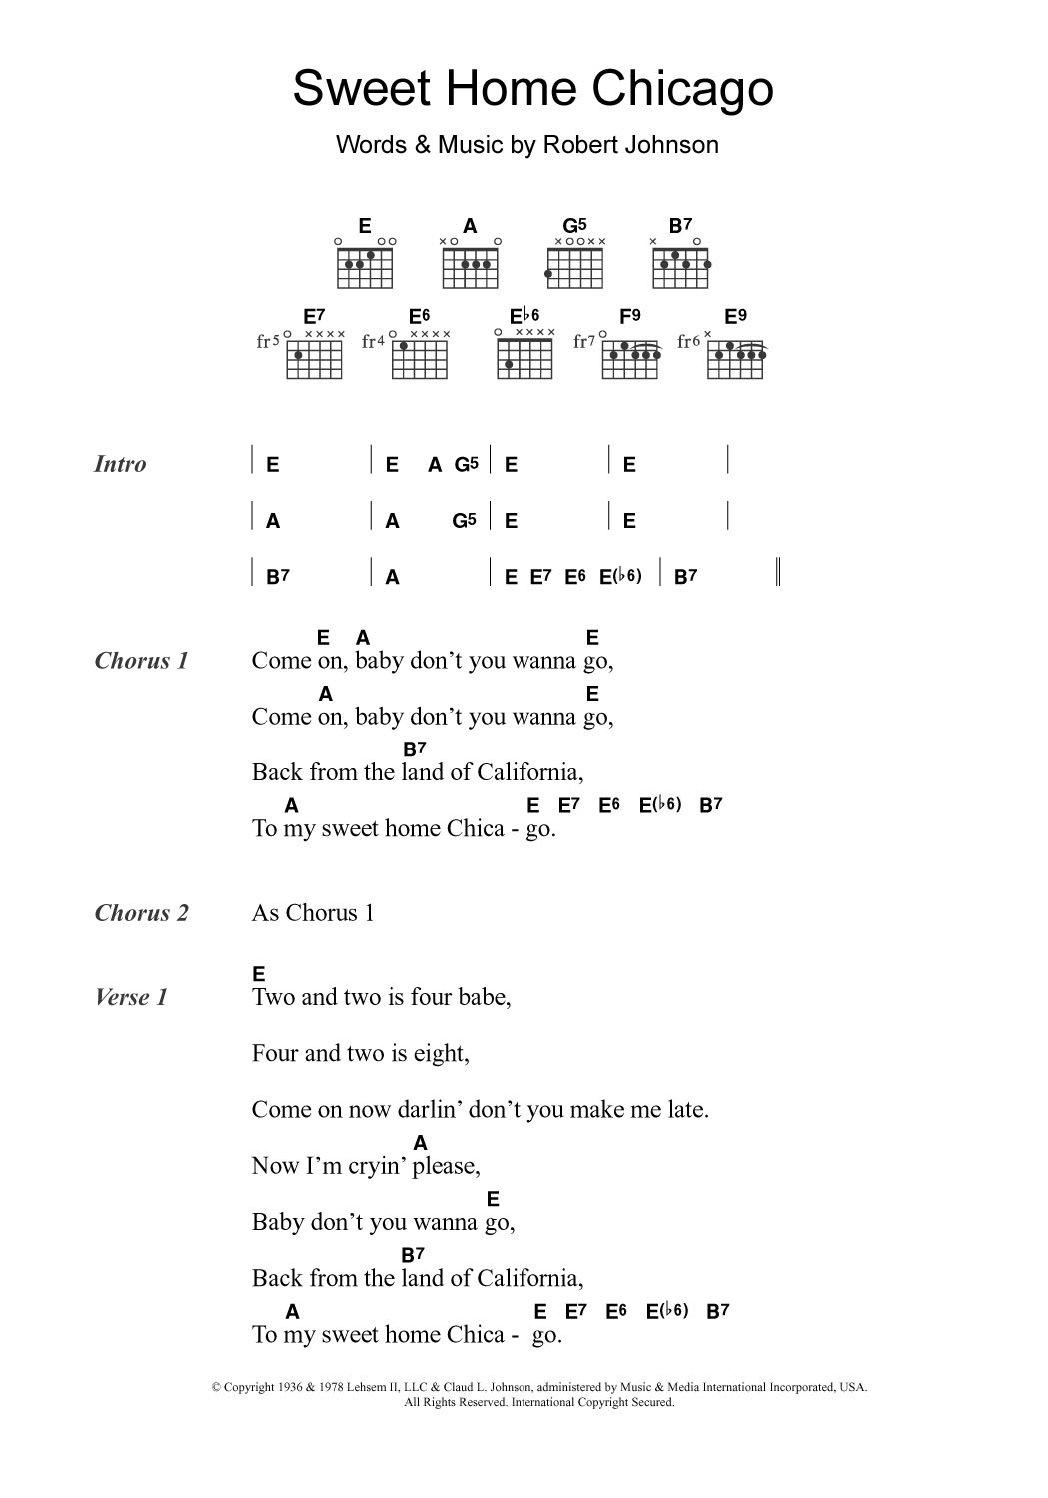 Sweet Home Chicago By Eric Clapton Guitar Chords Lyrics